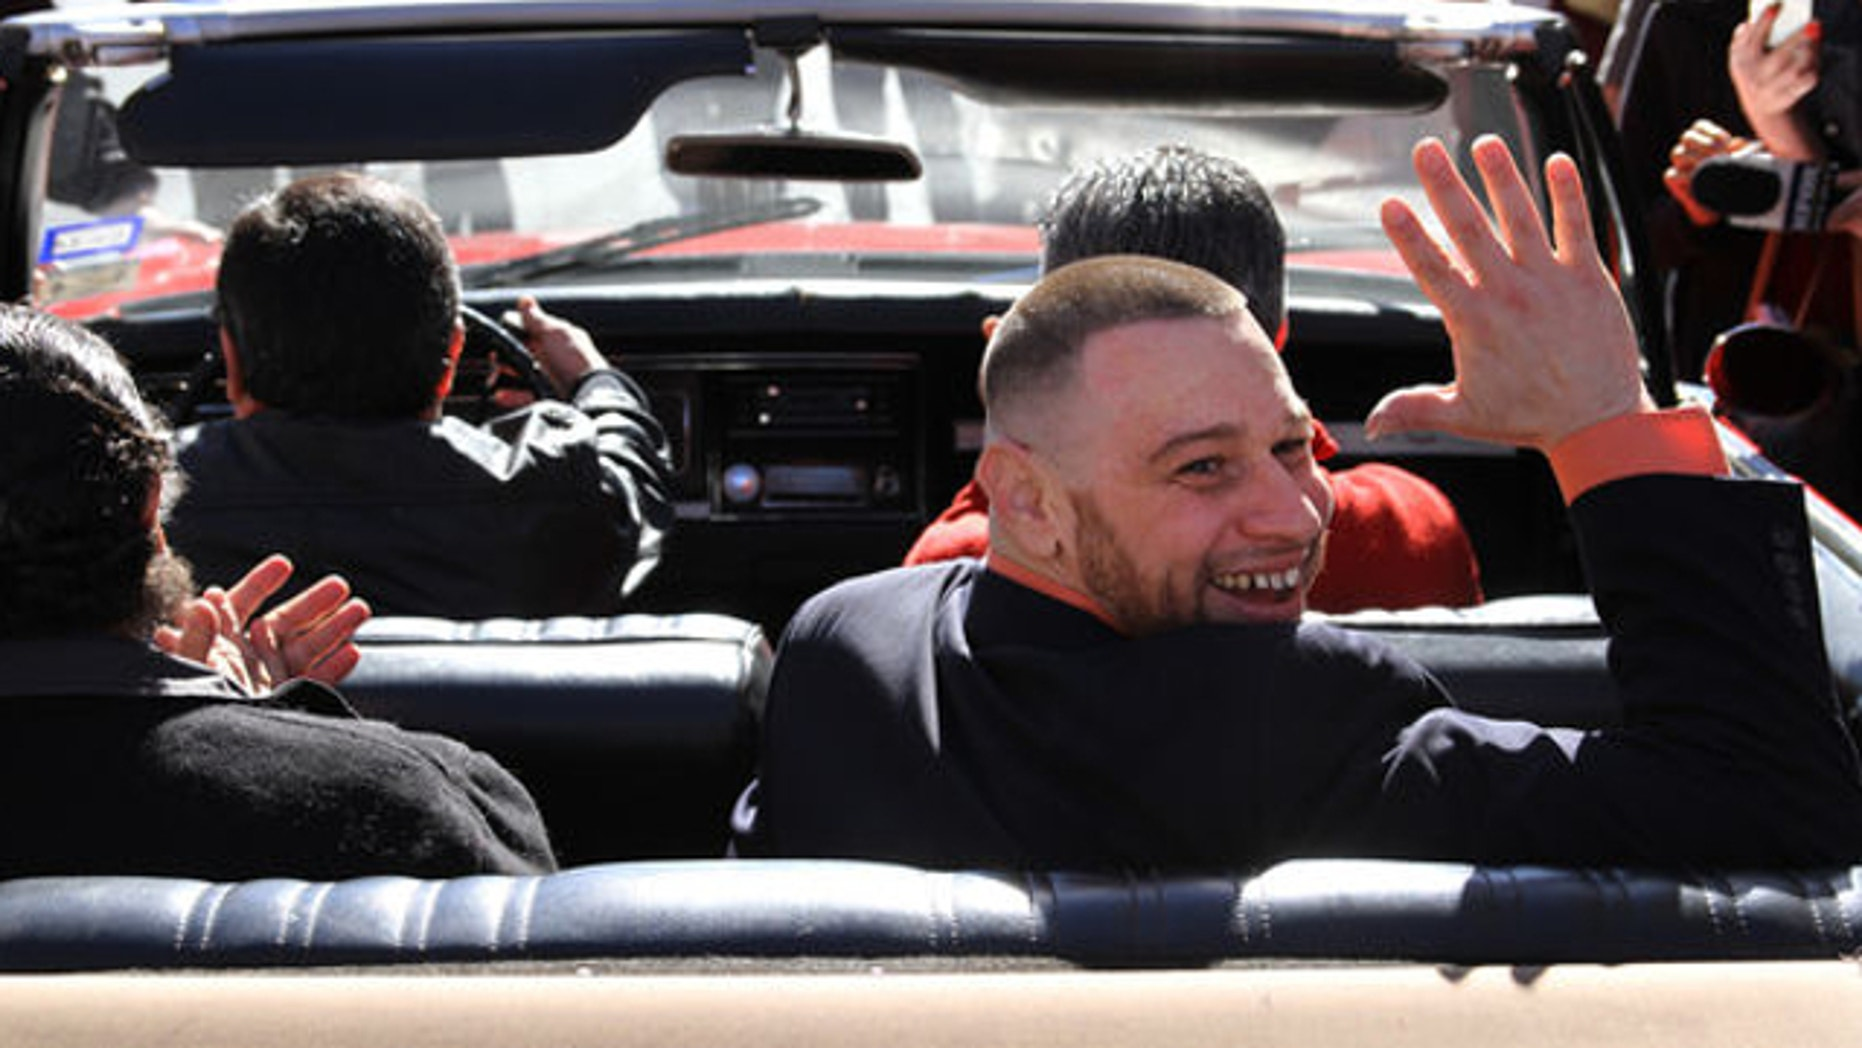 Jan. 14, 2014: Daniel Villegas waves as he leaves county jail in El Paso, Texas. Villegas, convicted in 1995 for the murder of two teens, was released on bond after a court of appeals ruled his defense was inefficient during the 1995 trial.